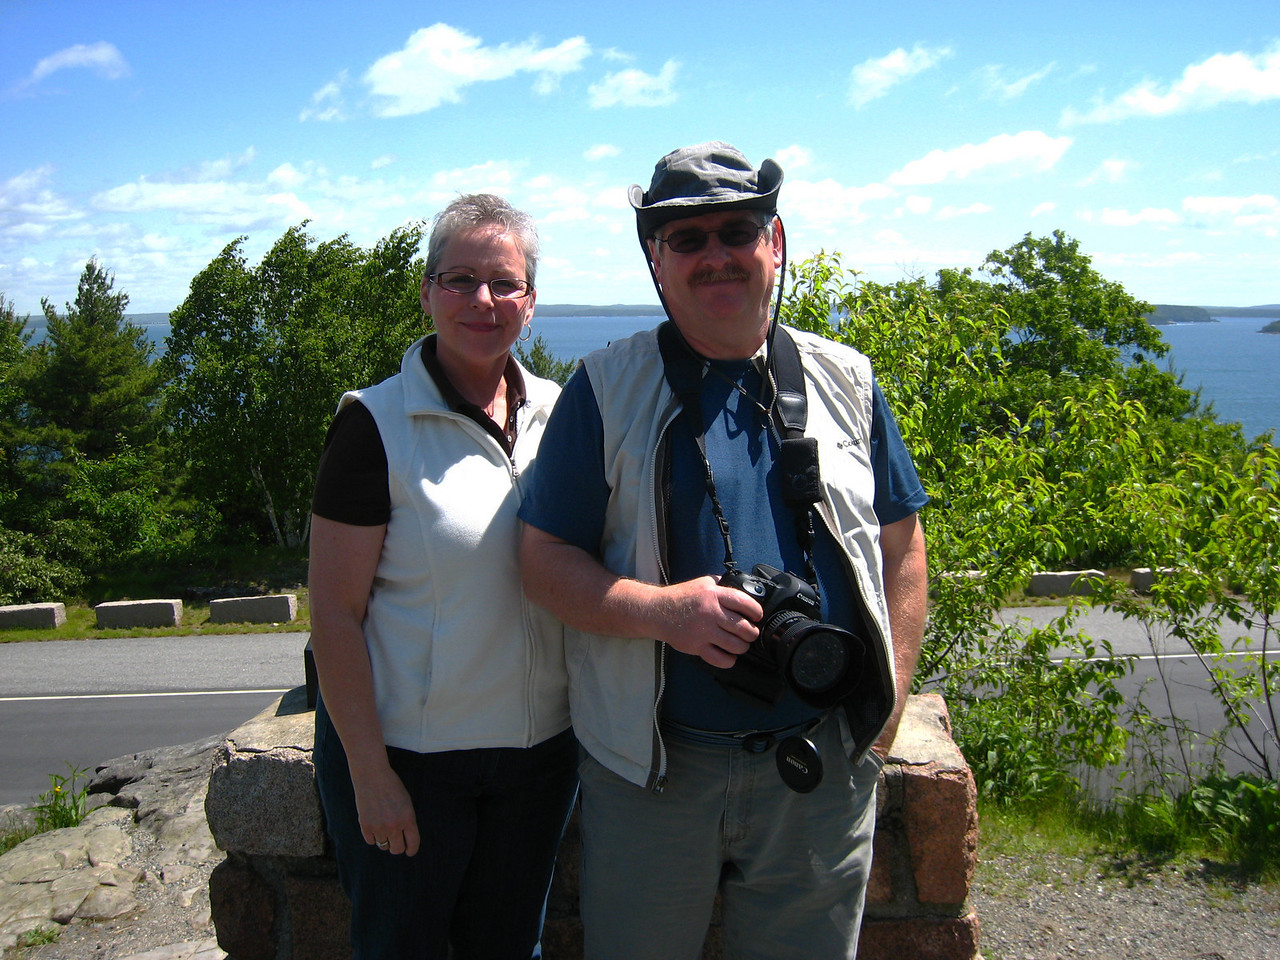 Cathy&Dave (me ) on top of Cadillac Mountain, Bar Harbor Acadia National Park.